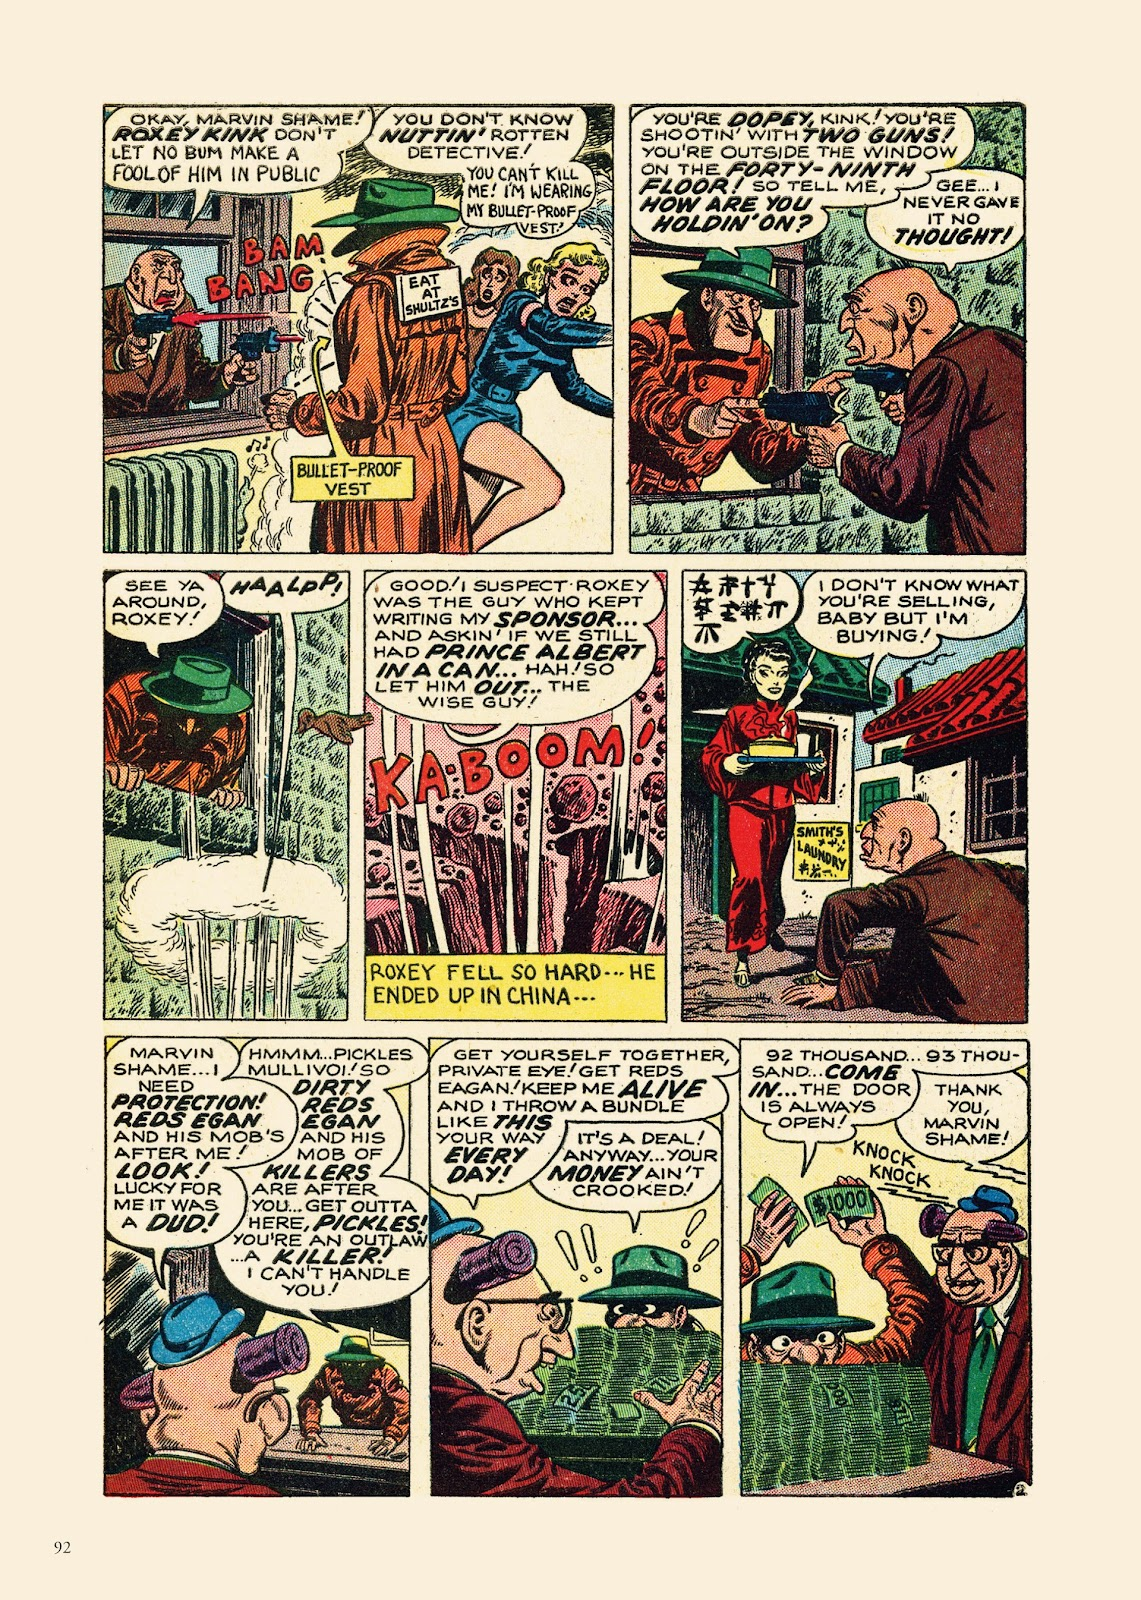 Read online Sincerest Form of Parody: The Best 1950s MAD-Inspired Satirical Comics comic -  Issue # TPB (Part 1) - 93